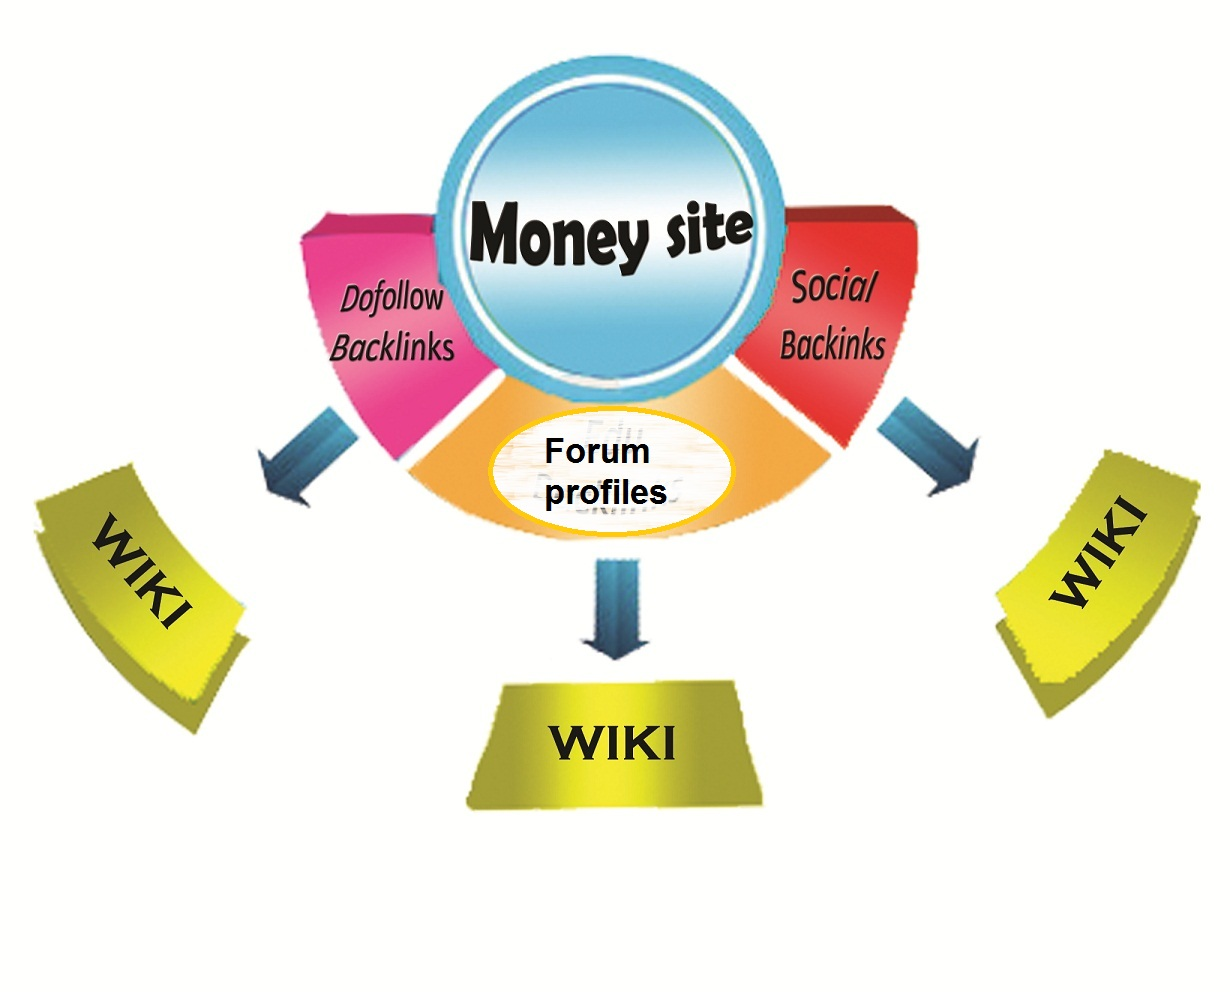 500 web 2.0 +500 forum profiles +500 dofollow and submit all into 10,000 wiki articles